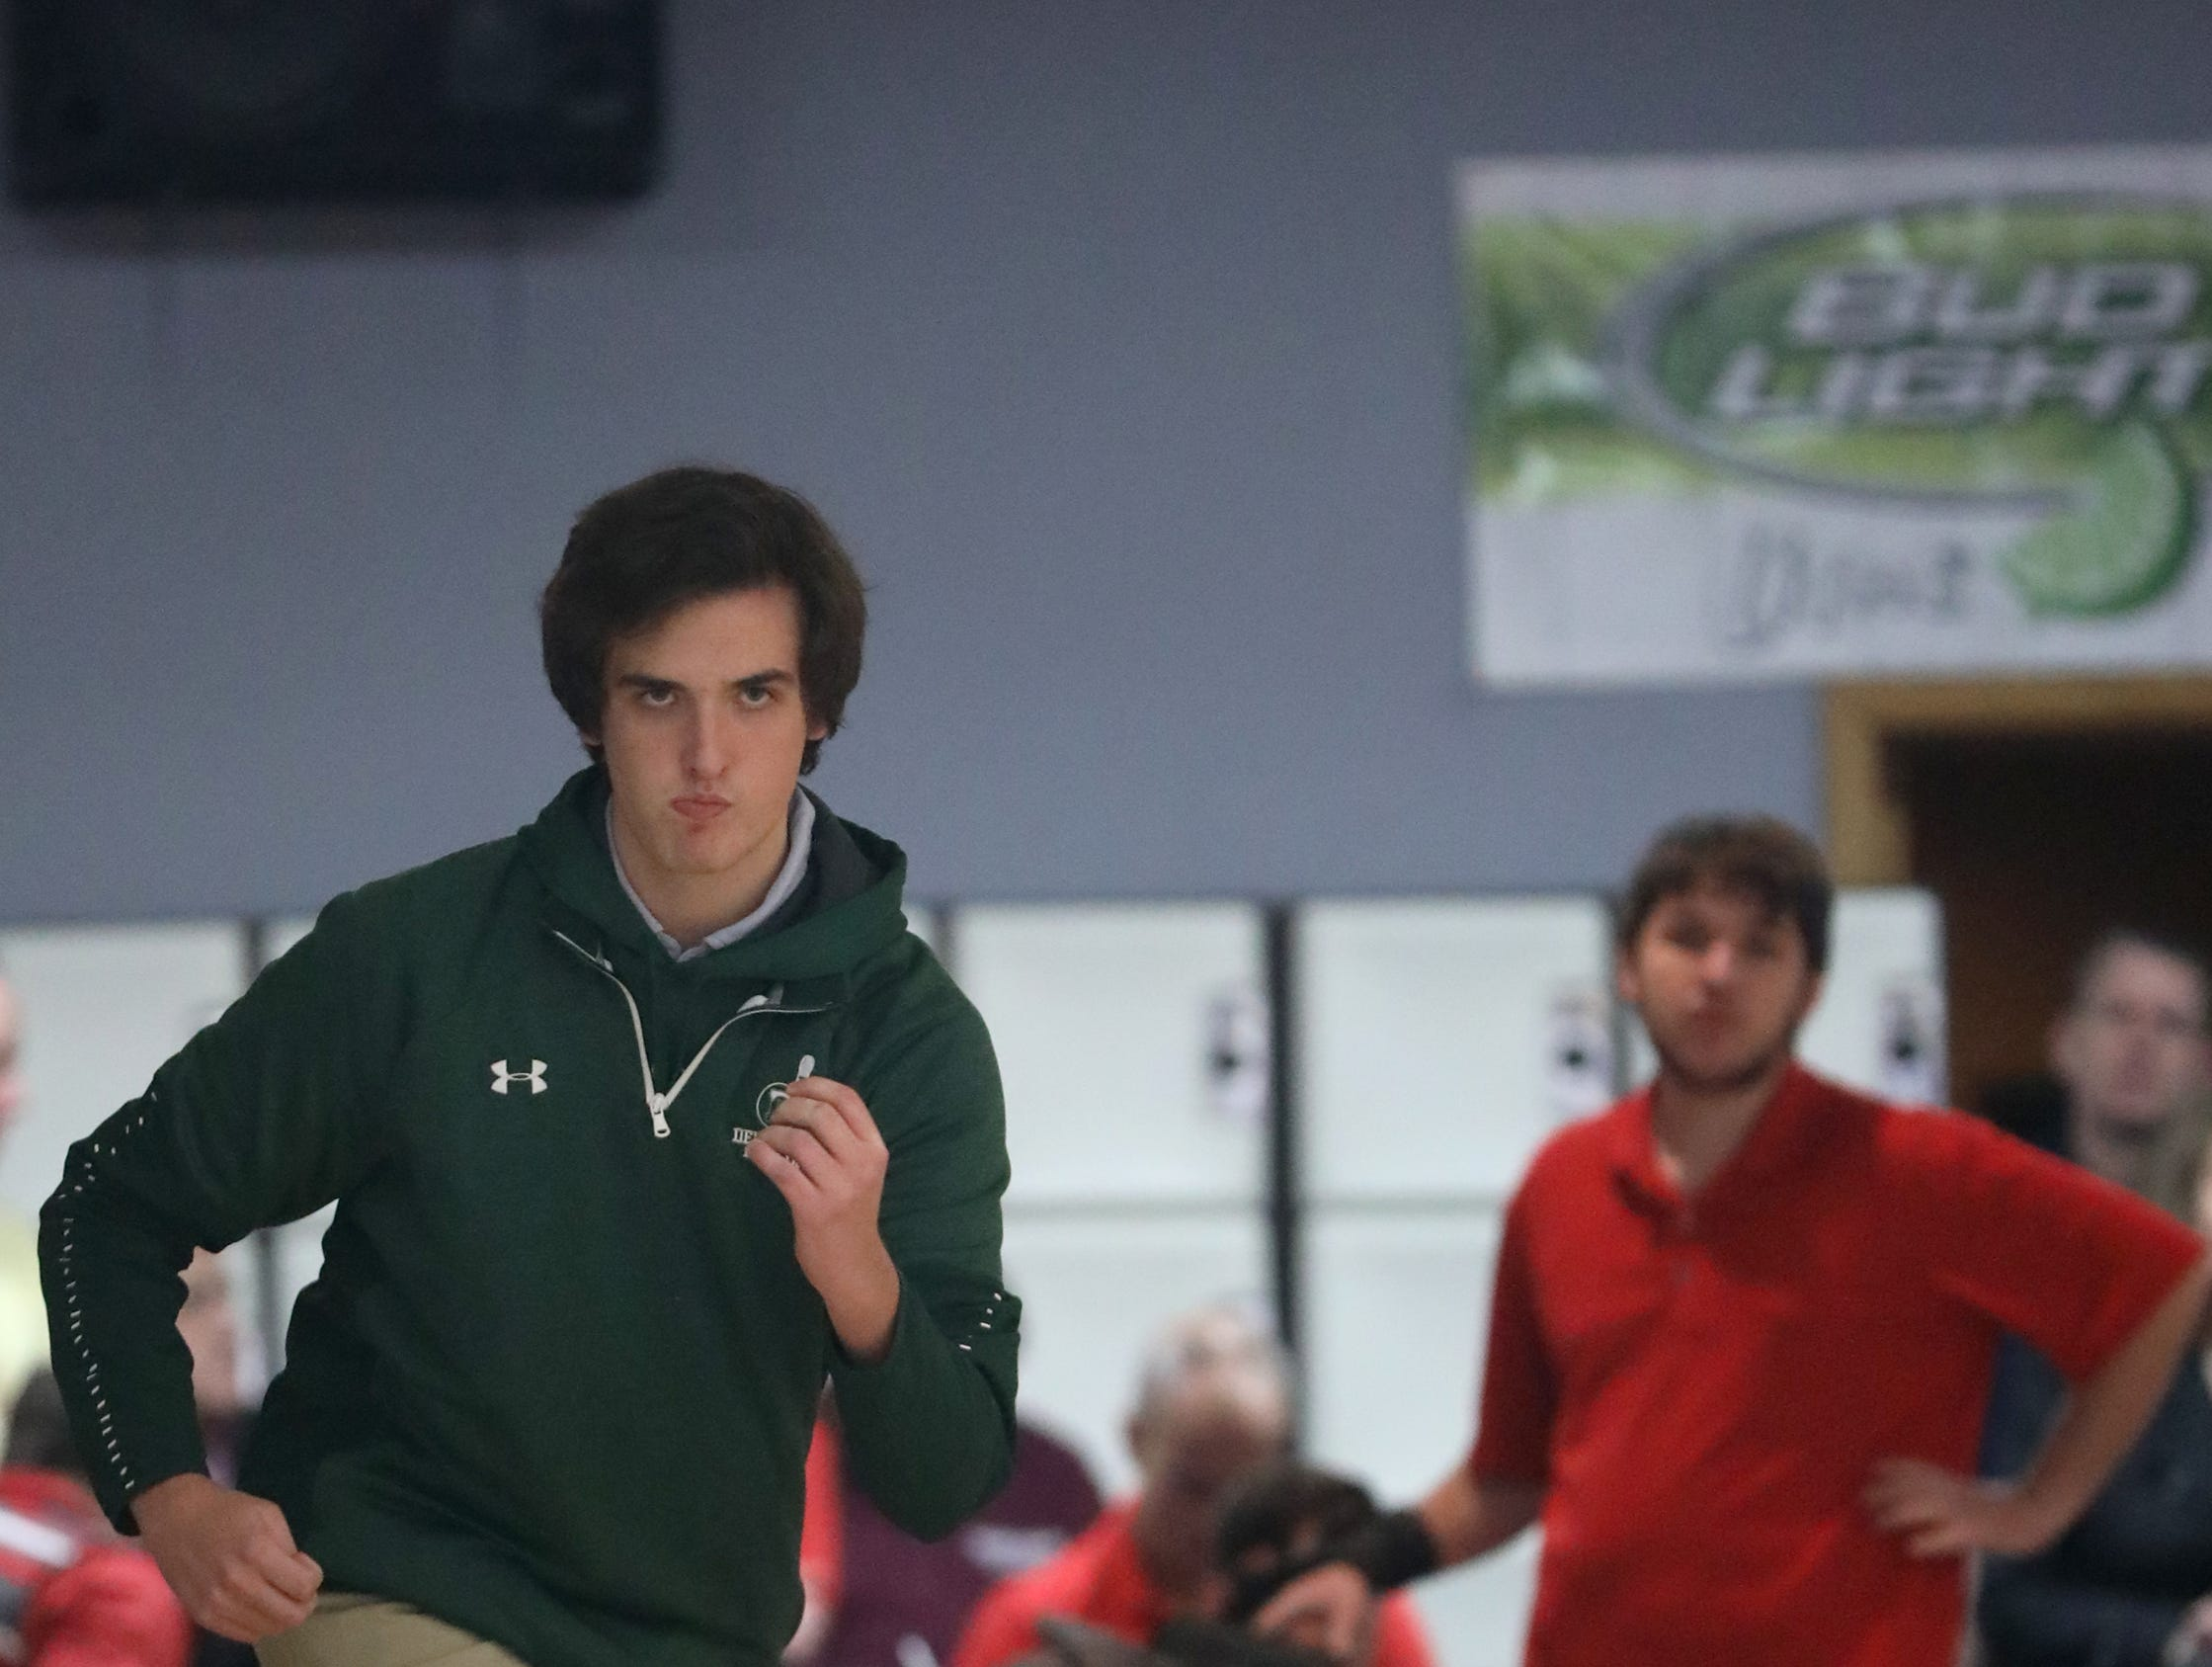 Billy Georgen, of Delbarton, competes at the Morris County Bowling Tournament, in Rockaway. Thursday, January 24, 2019